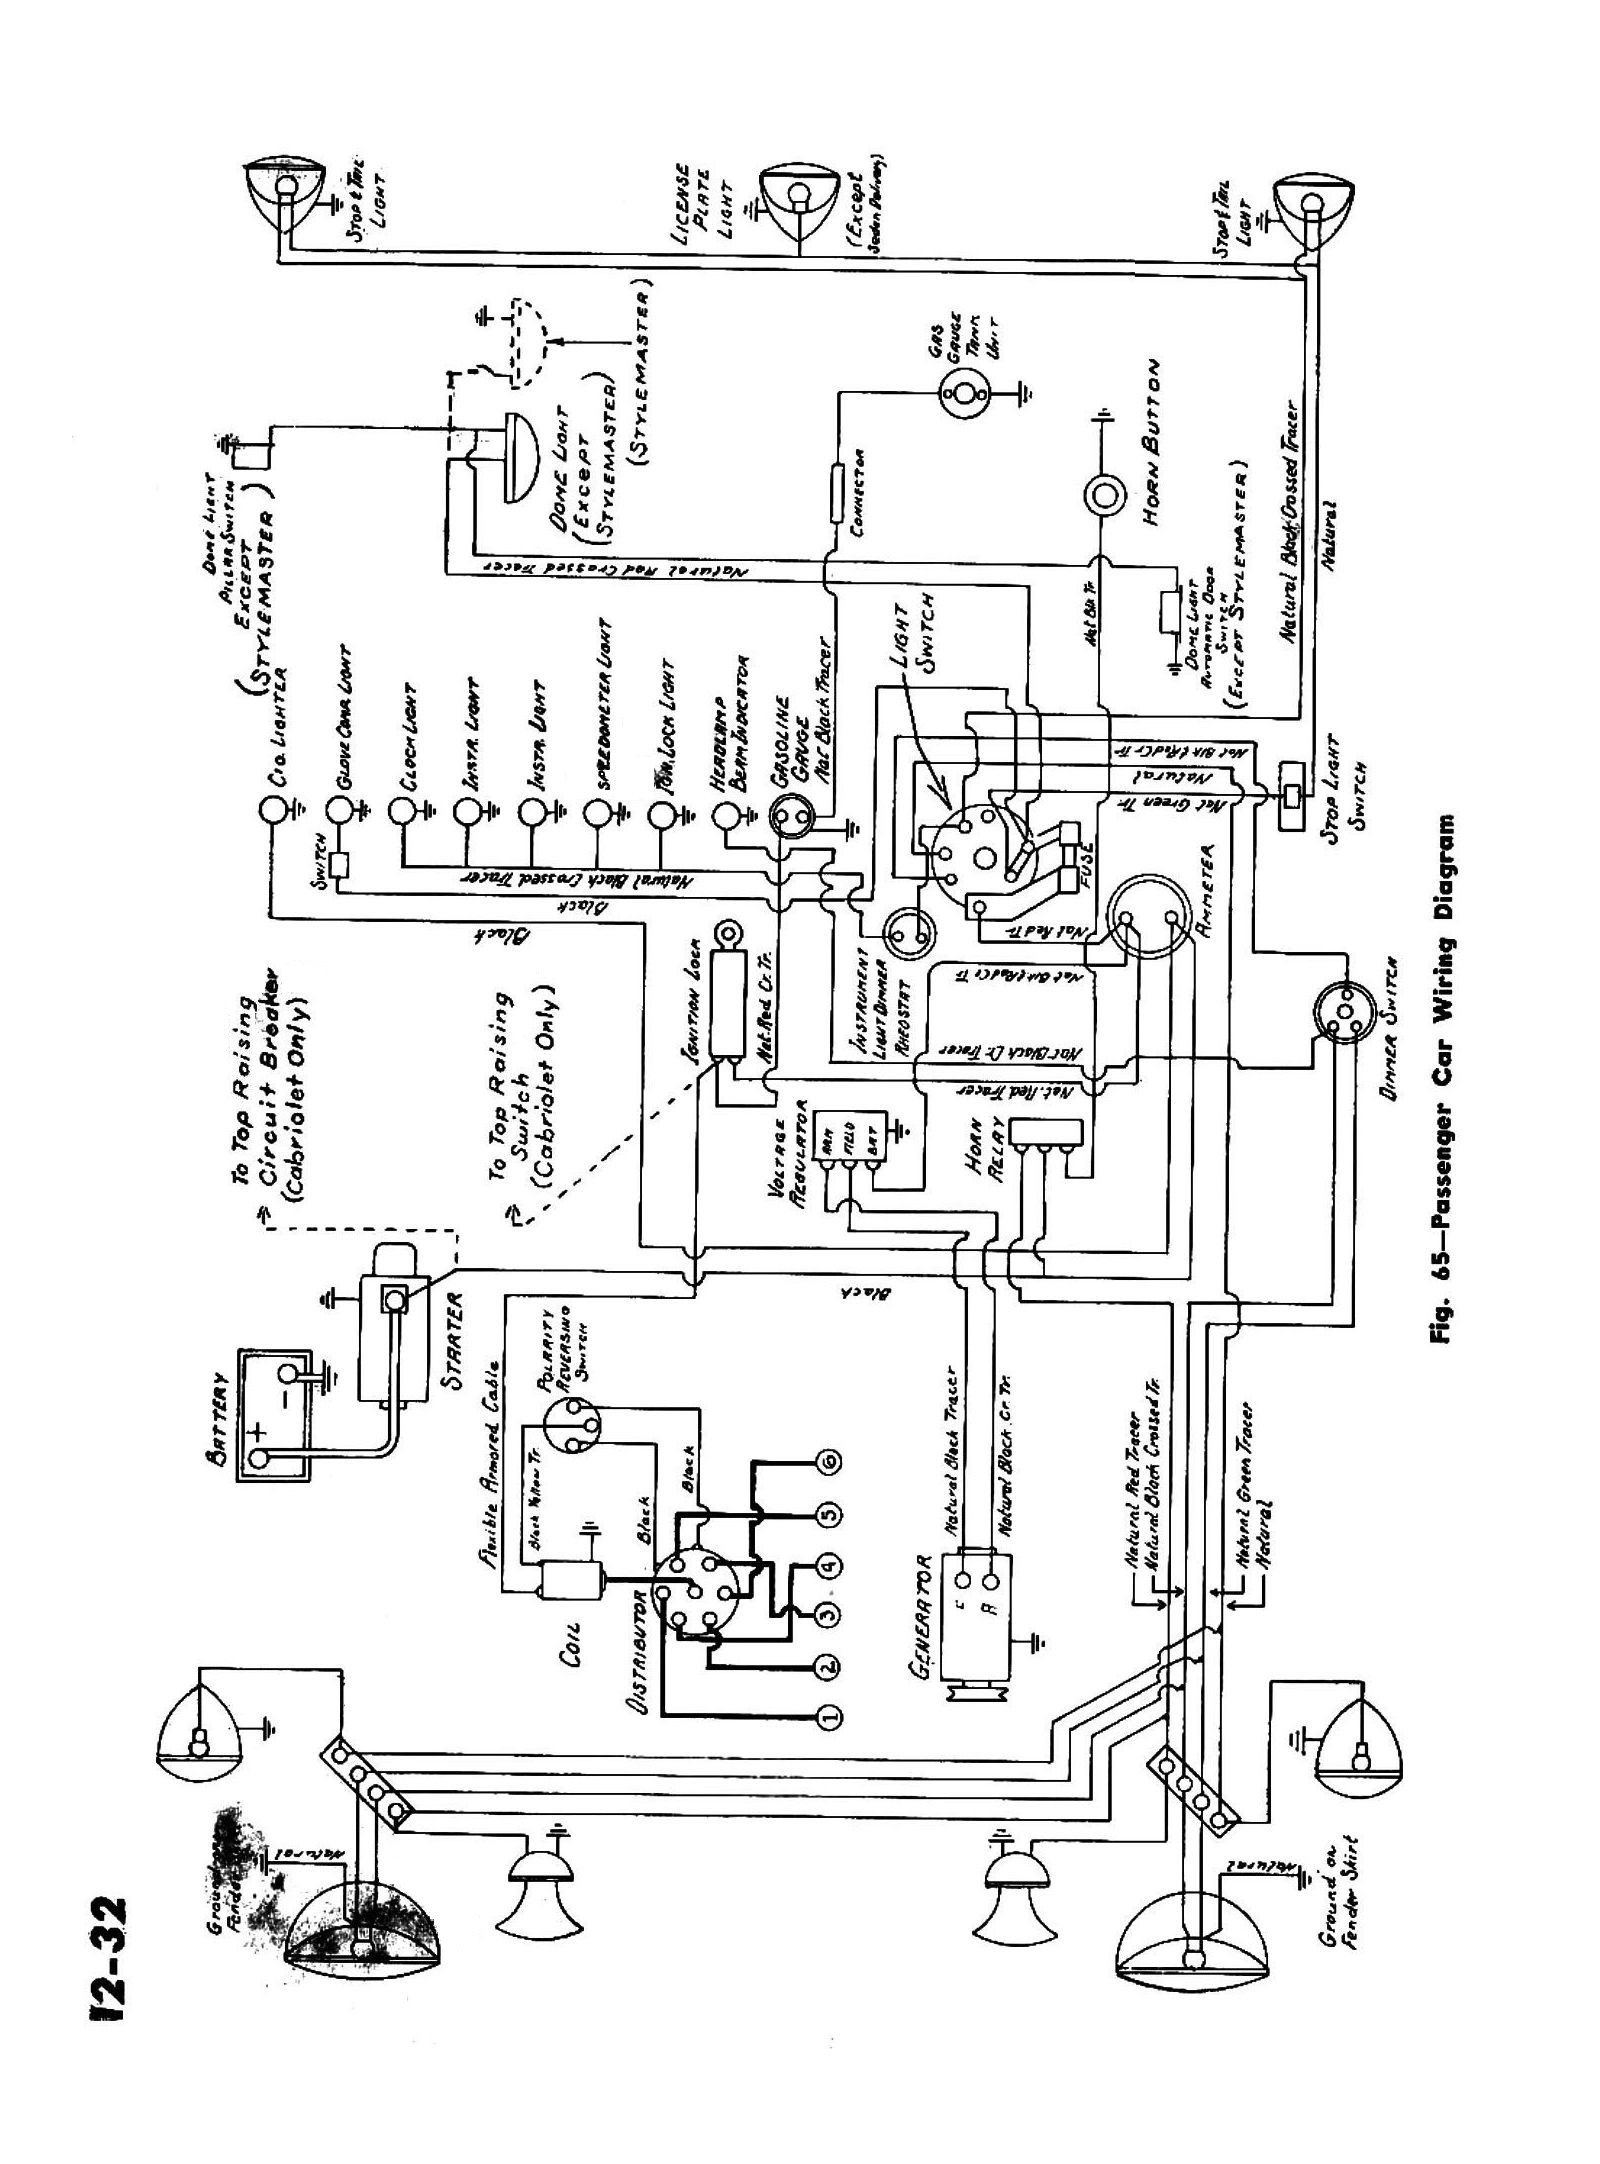 91 club car wiring diagram wiring diagram91 club car wiring diagram